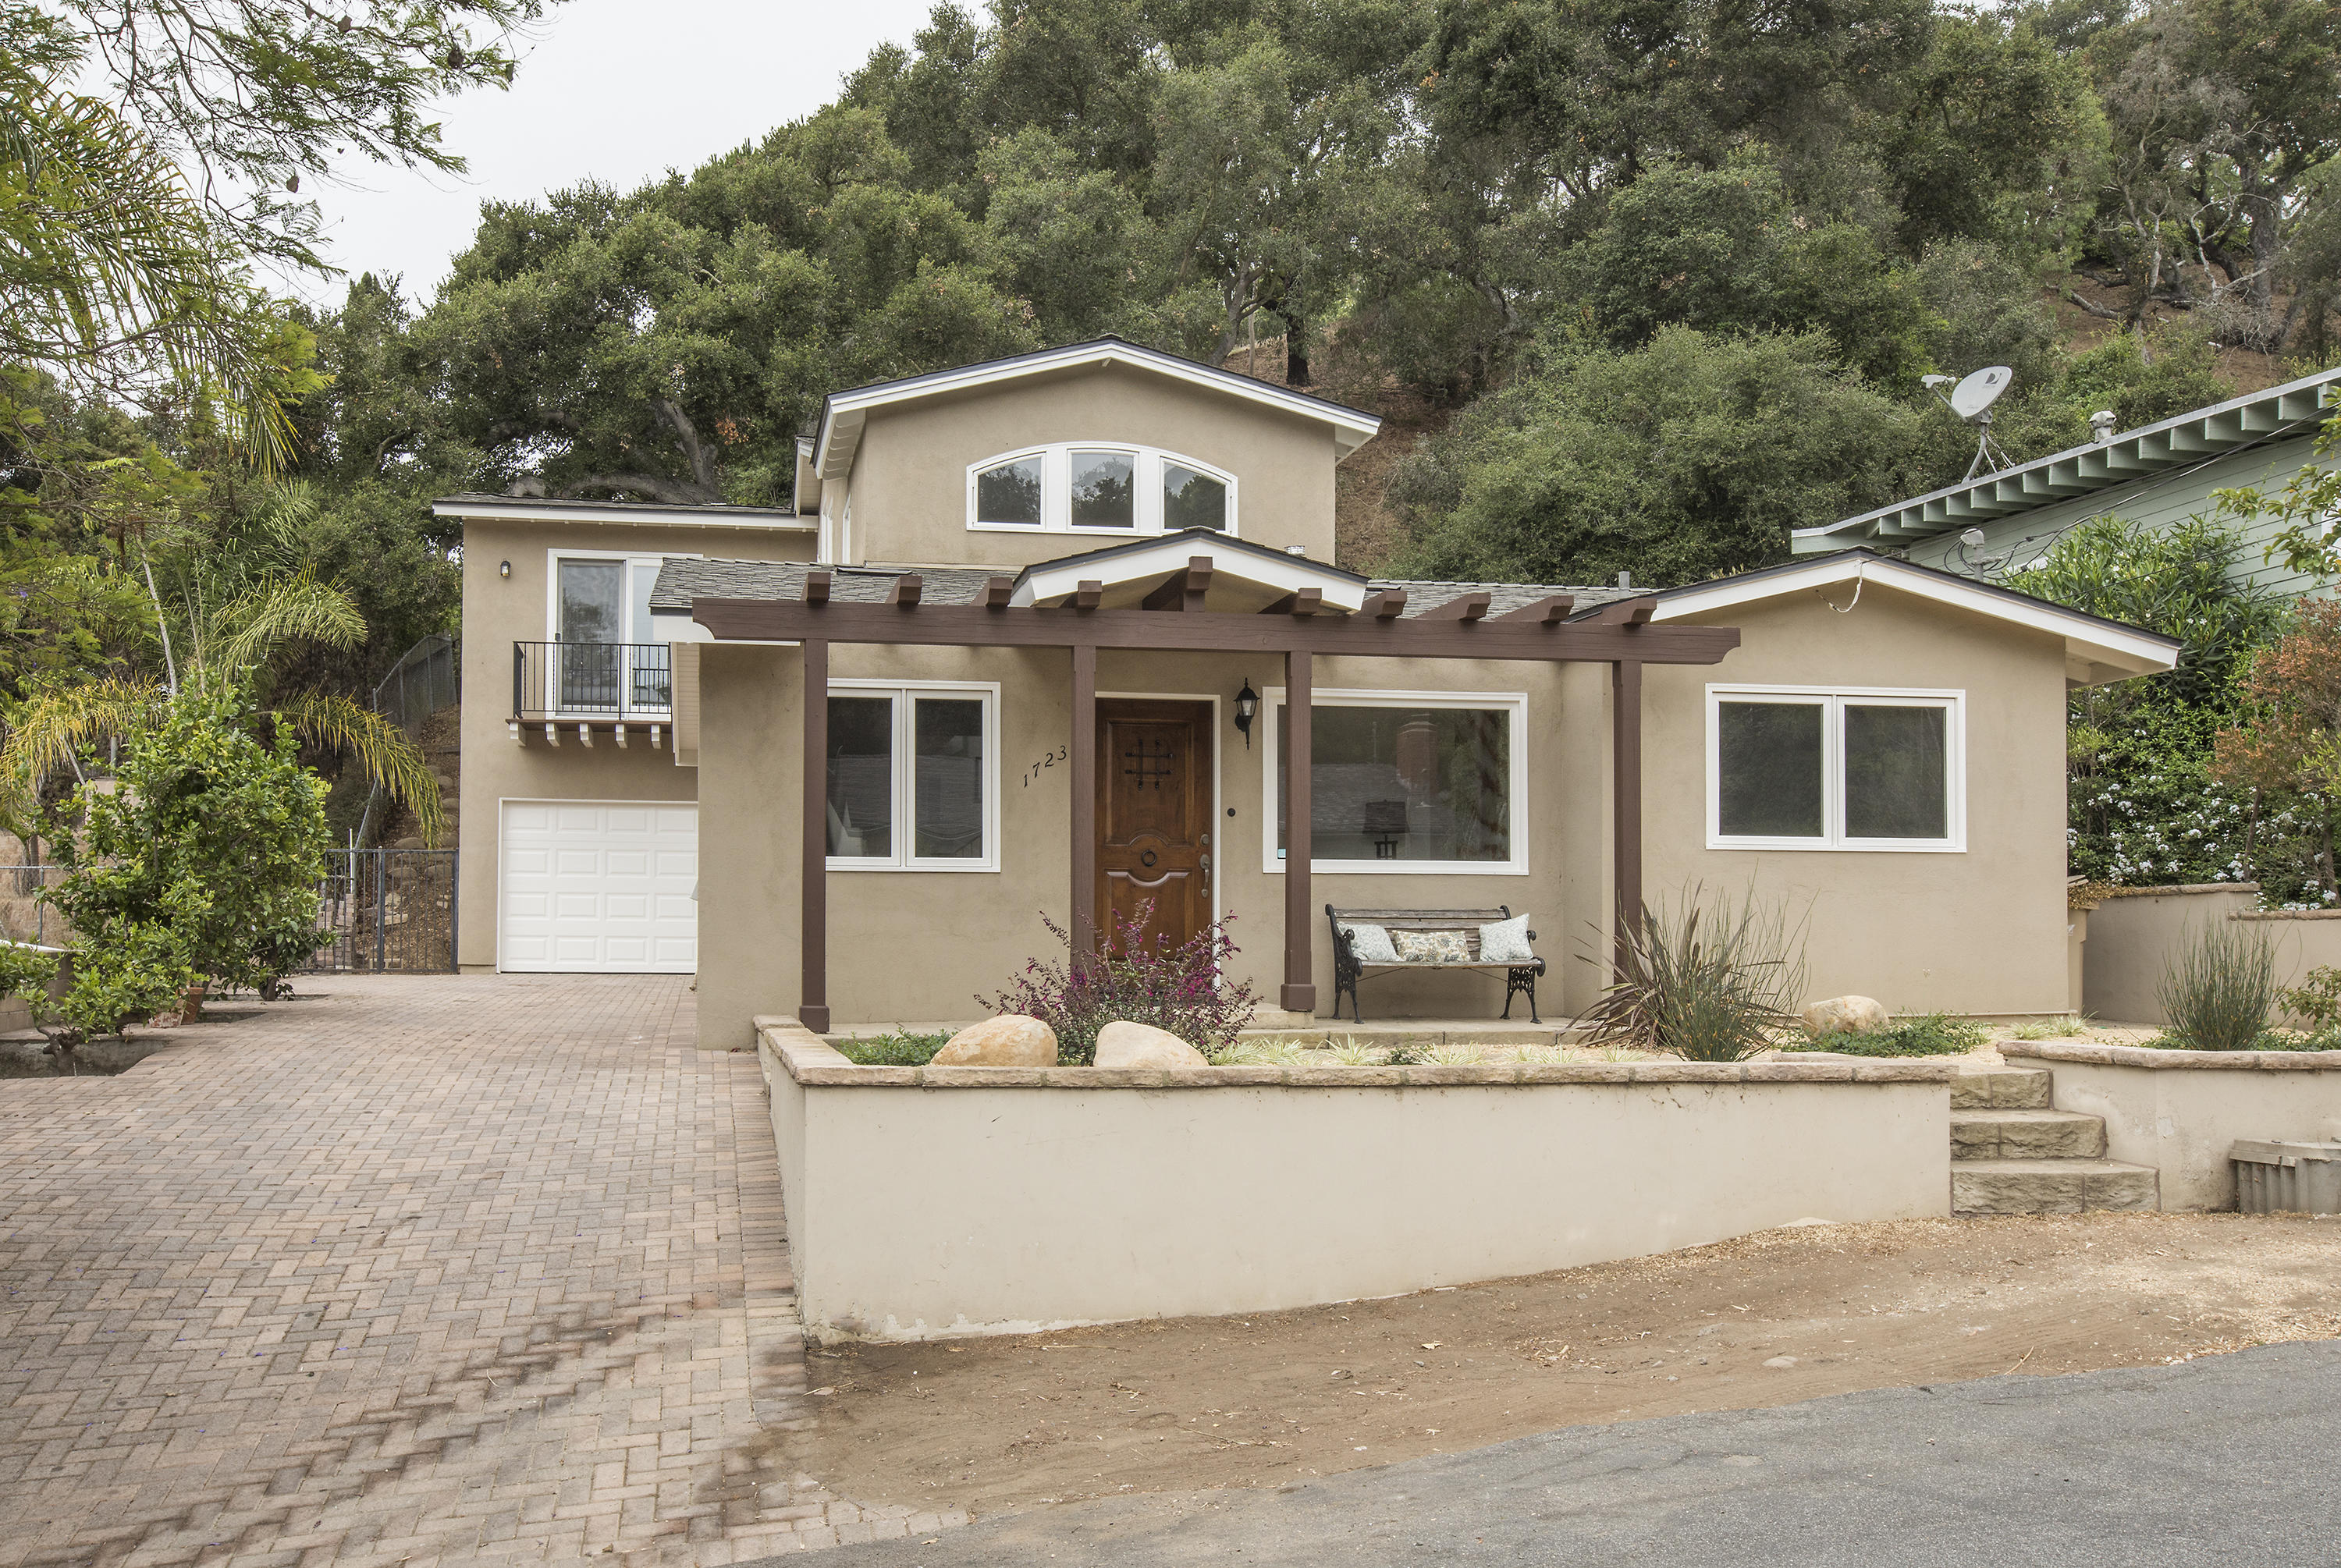 Property photo for 1723 Calle Cerro Santa Barbara, California 93101 - 17-2429